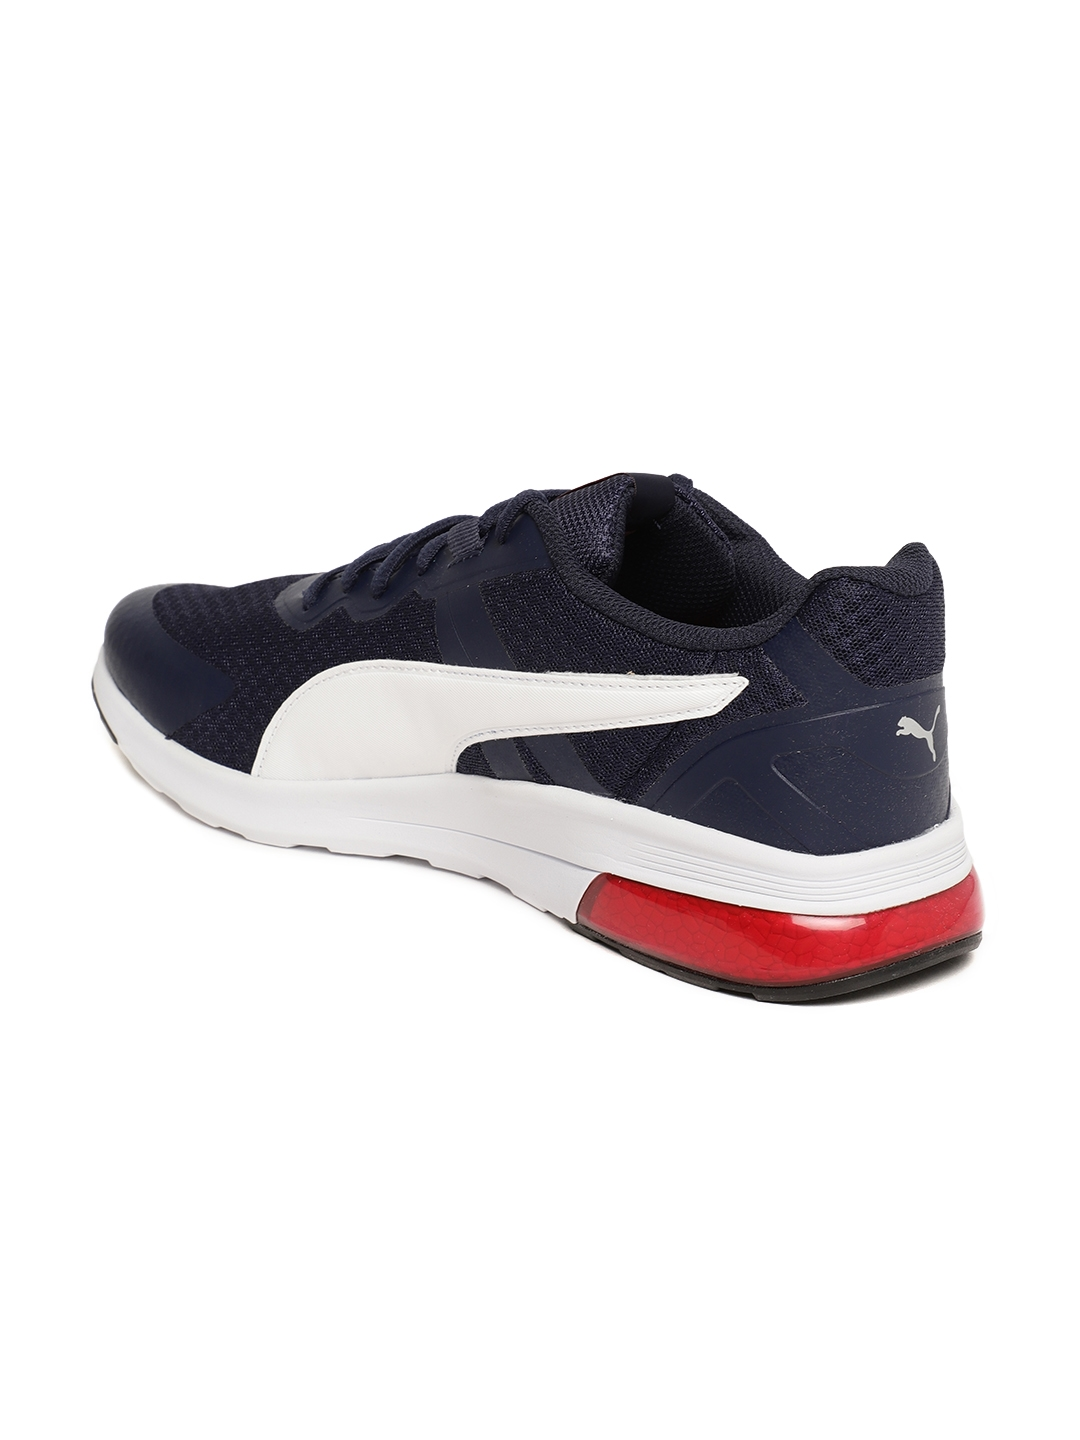 42ad9209d20 Buy Puma Men Navy Blue Electron Training Shoes - Sports Shoes for ...